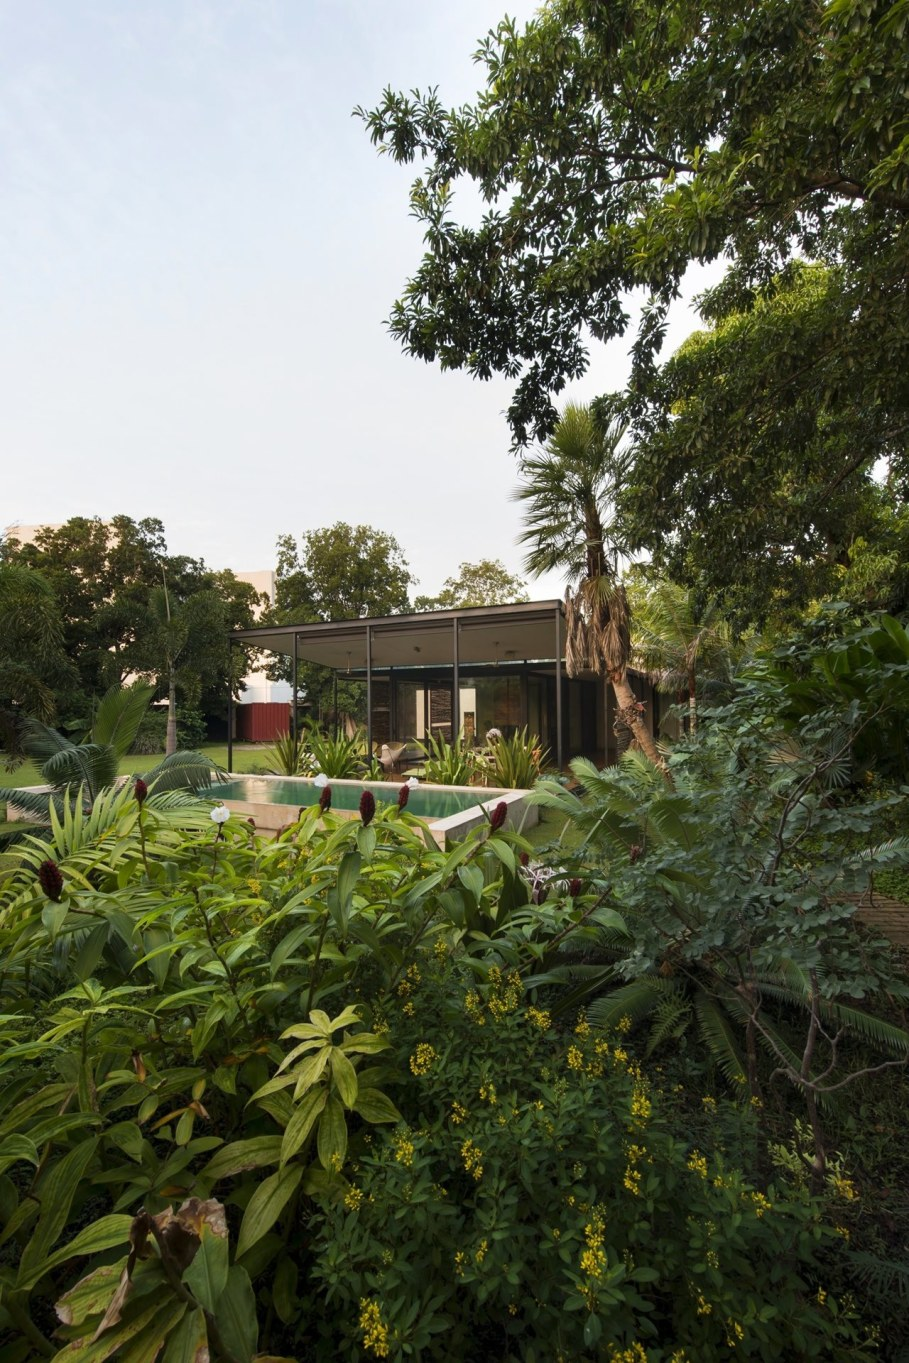 Energy-Saving Itzimna House in Mexico - Garden and swimming pool